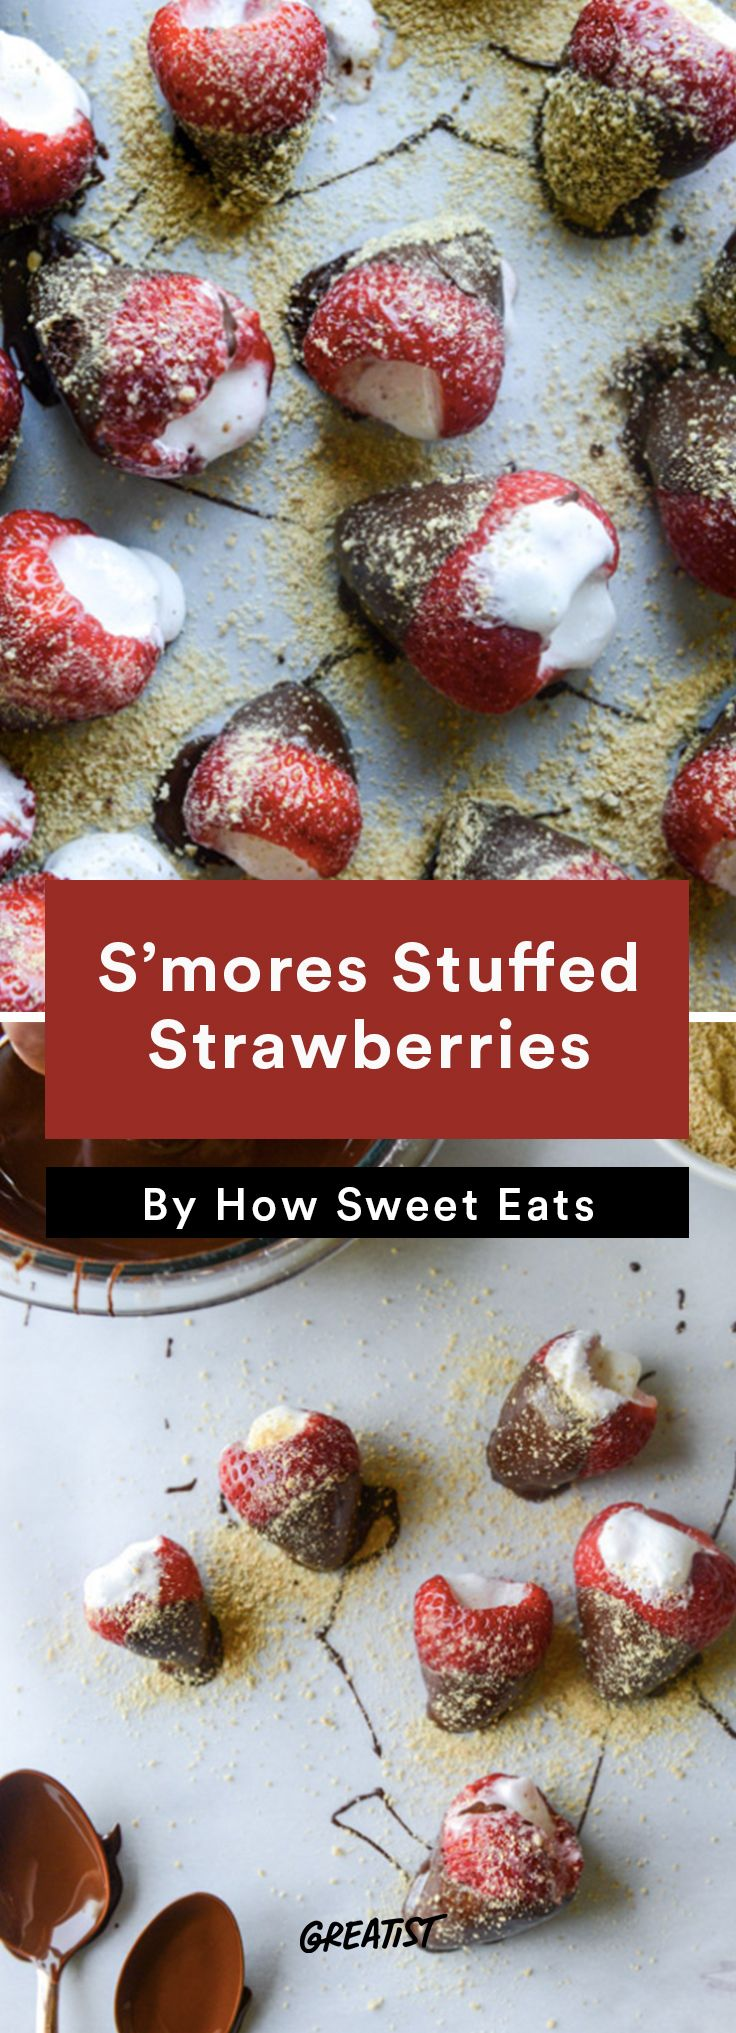 10. S'mores-Stuffed Strawberries http://greatist.com/eat/smores-recipes-to-make-indoors